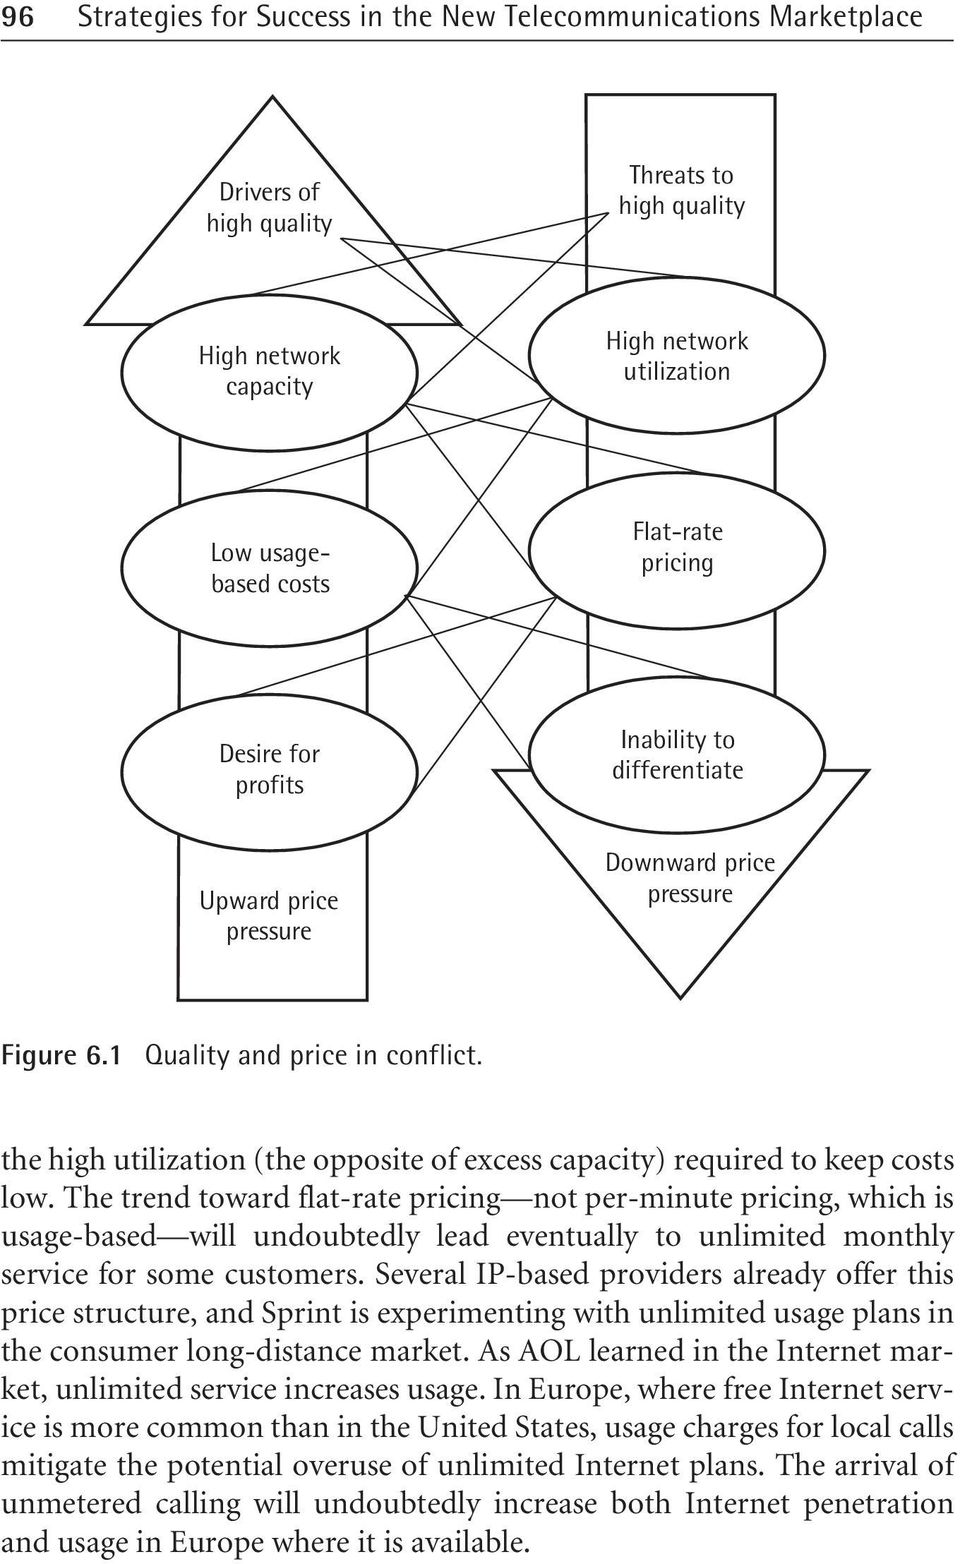 the high utilization (the opposite of excess capacity) required to keep costs low.